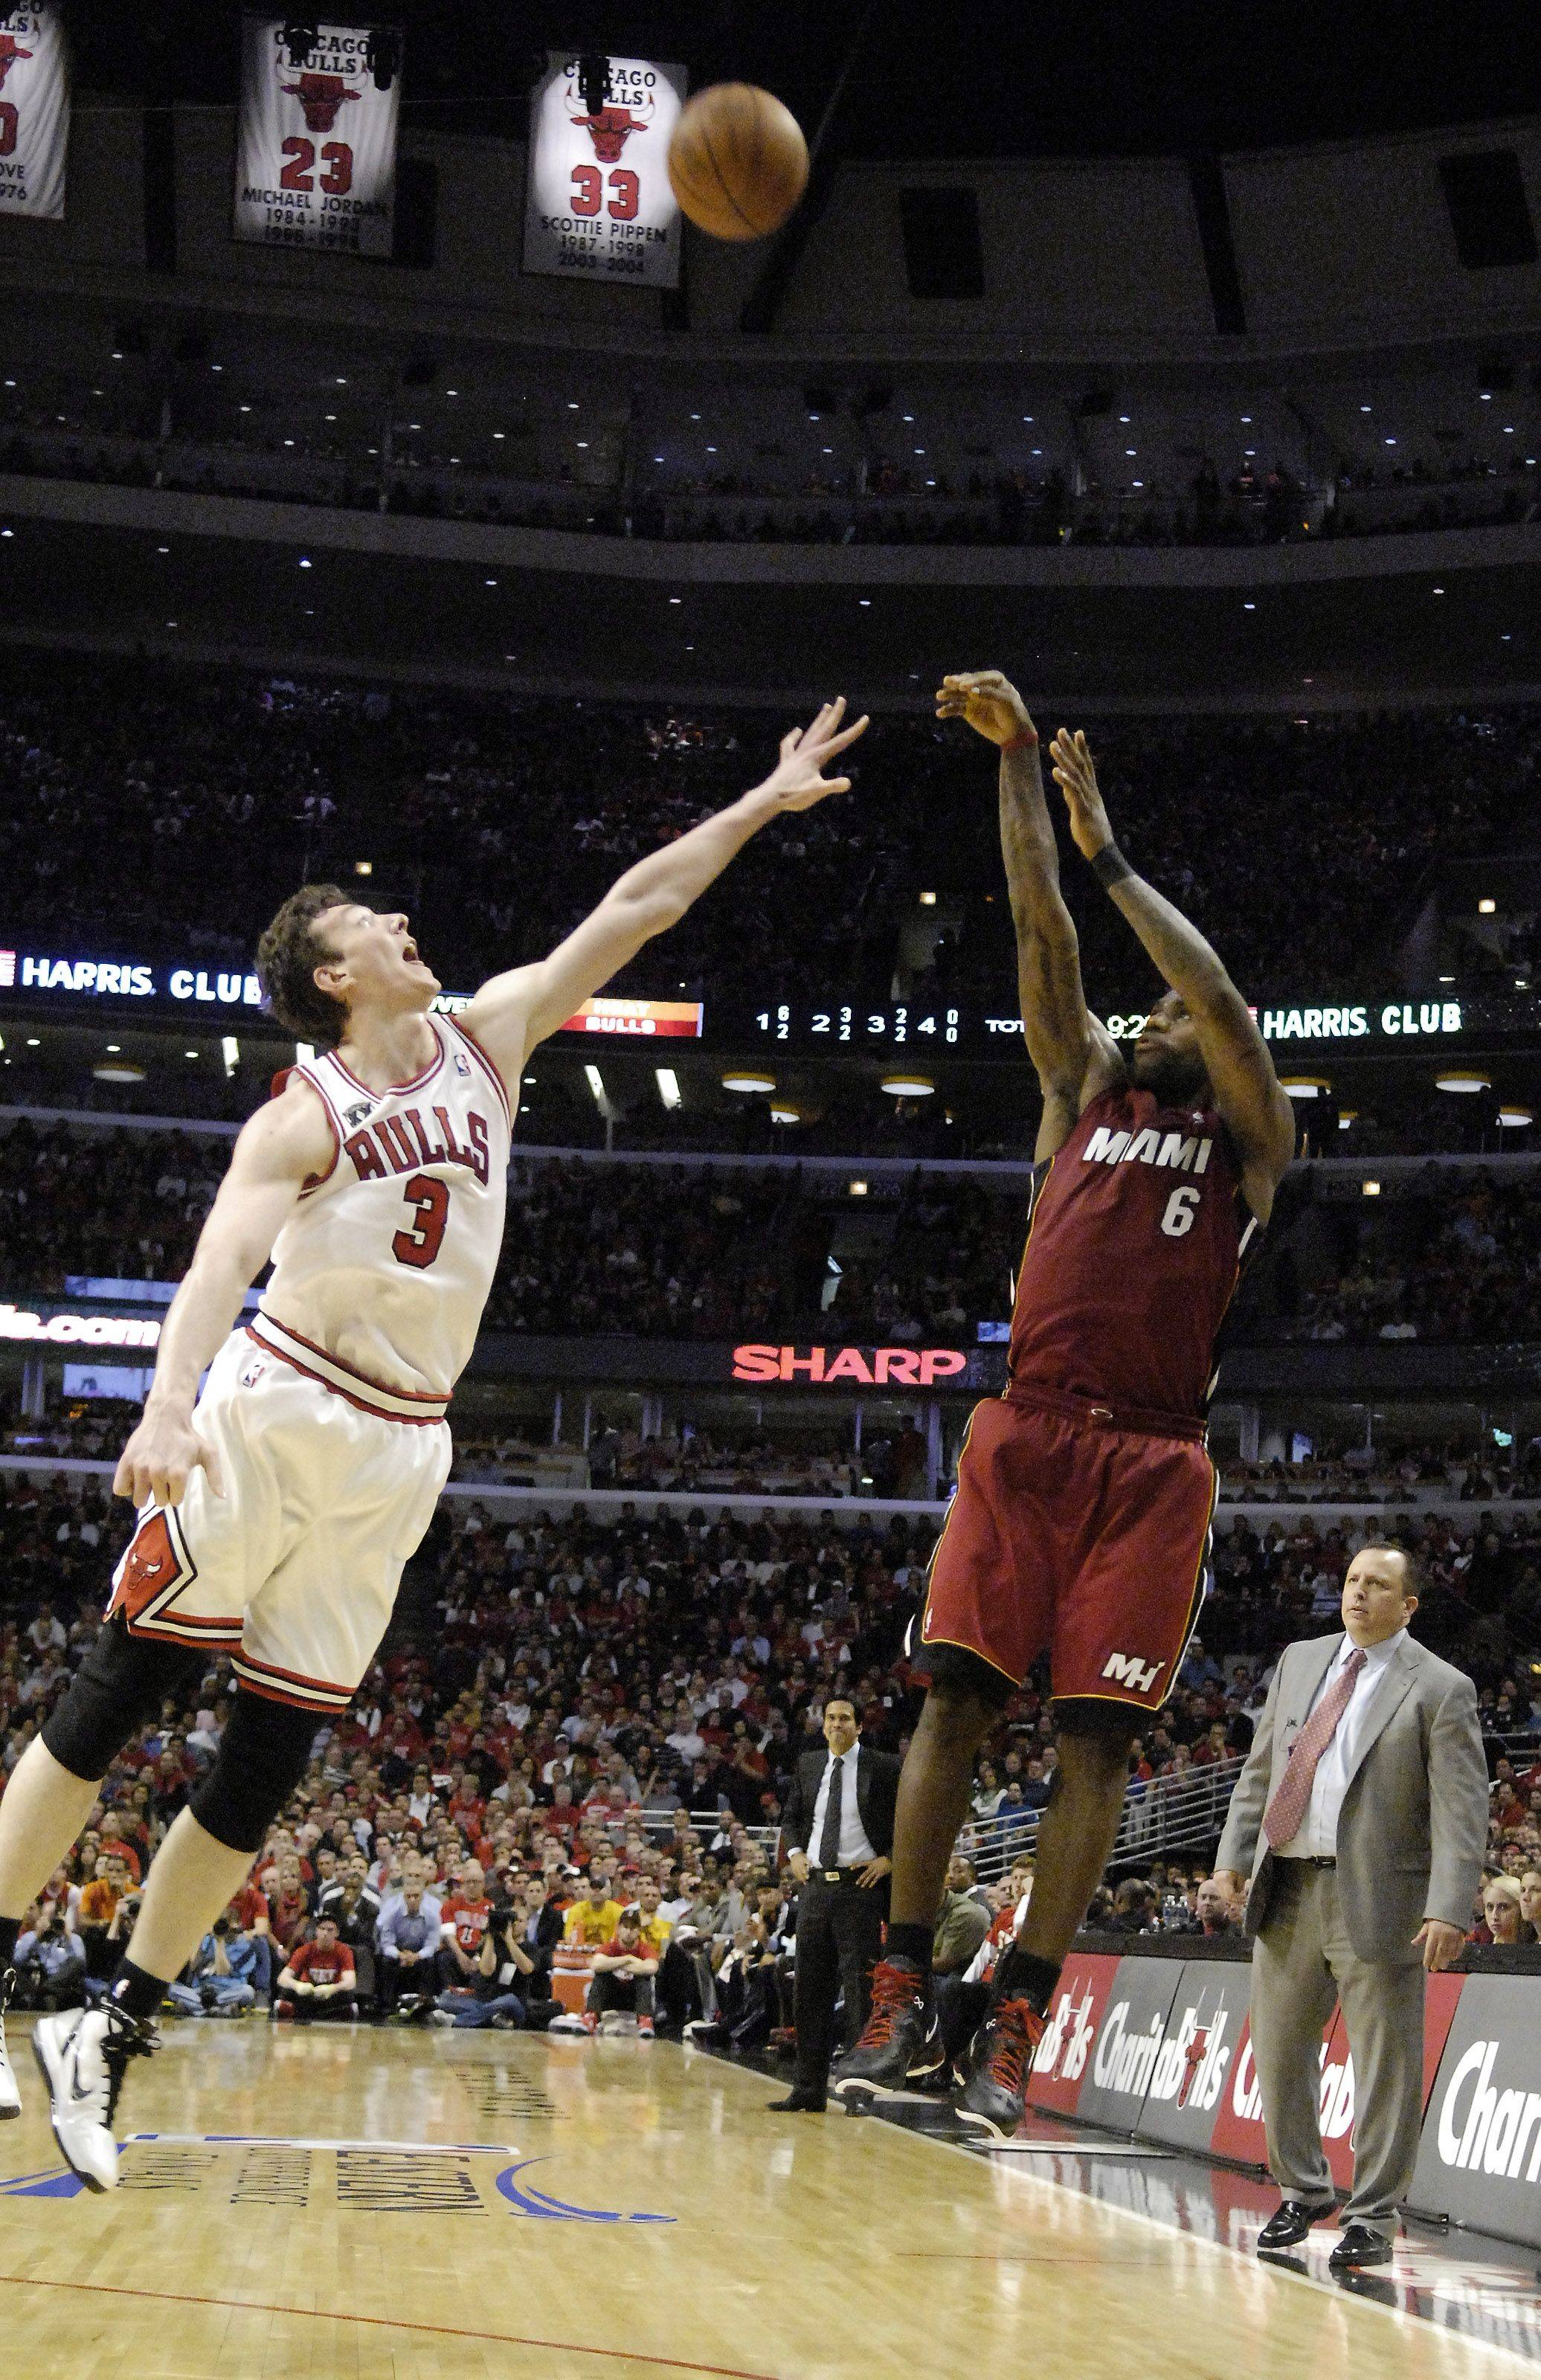 Miami Heat small forward LeBron James launches a 3-pointer over Bulls center Omer Asik during Game 2 of the NBA Eastern Conference finals at the United Center Wednesday. Game 3 is Sunday, and Asik has started every fourth quarter in this series.